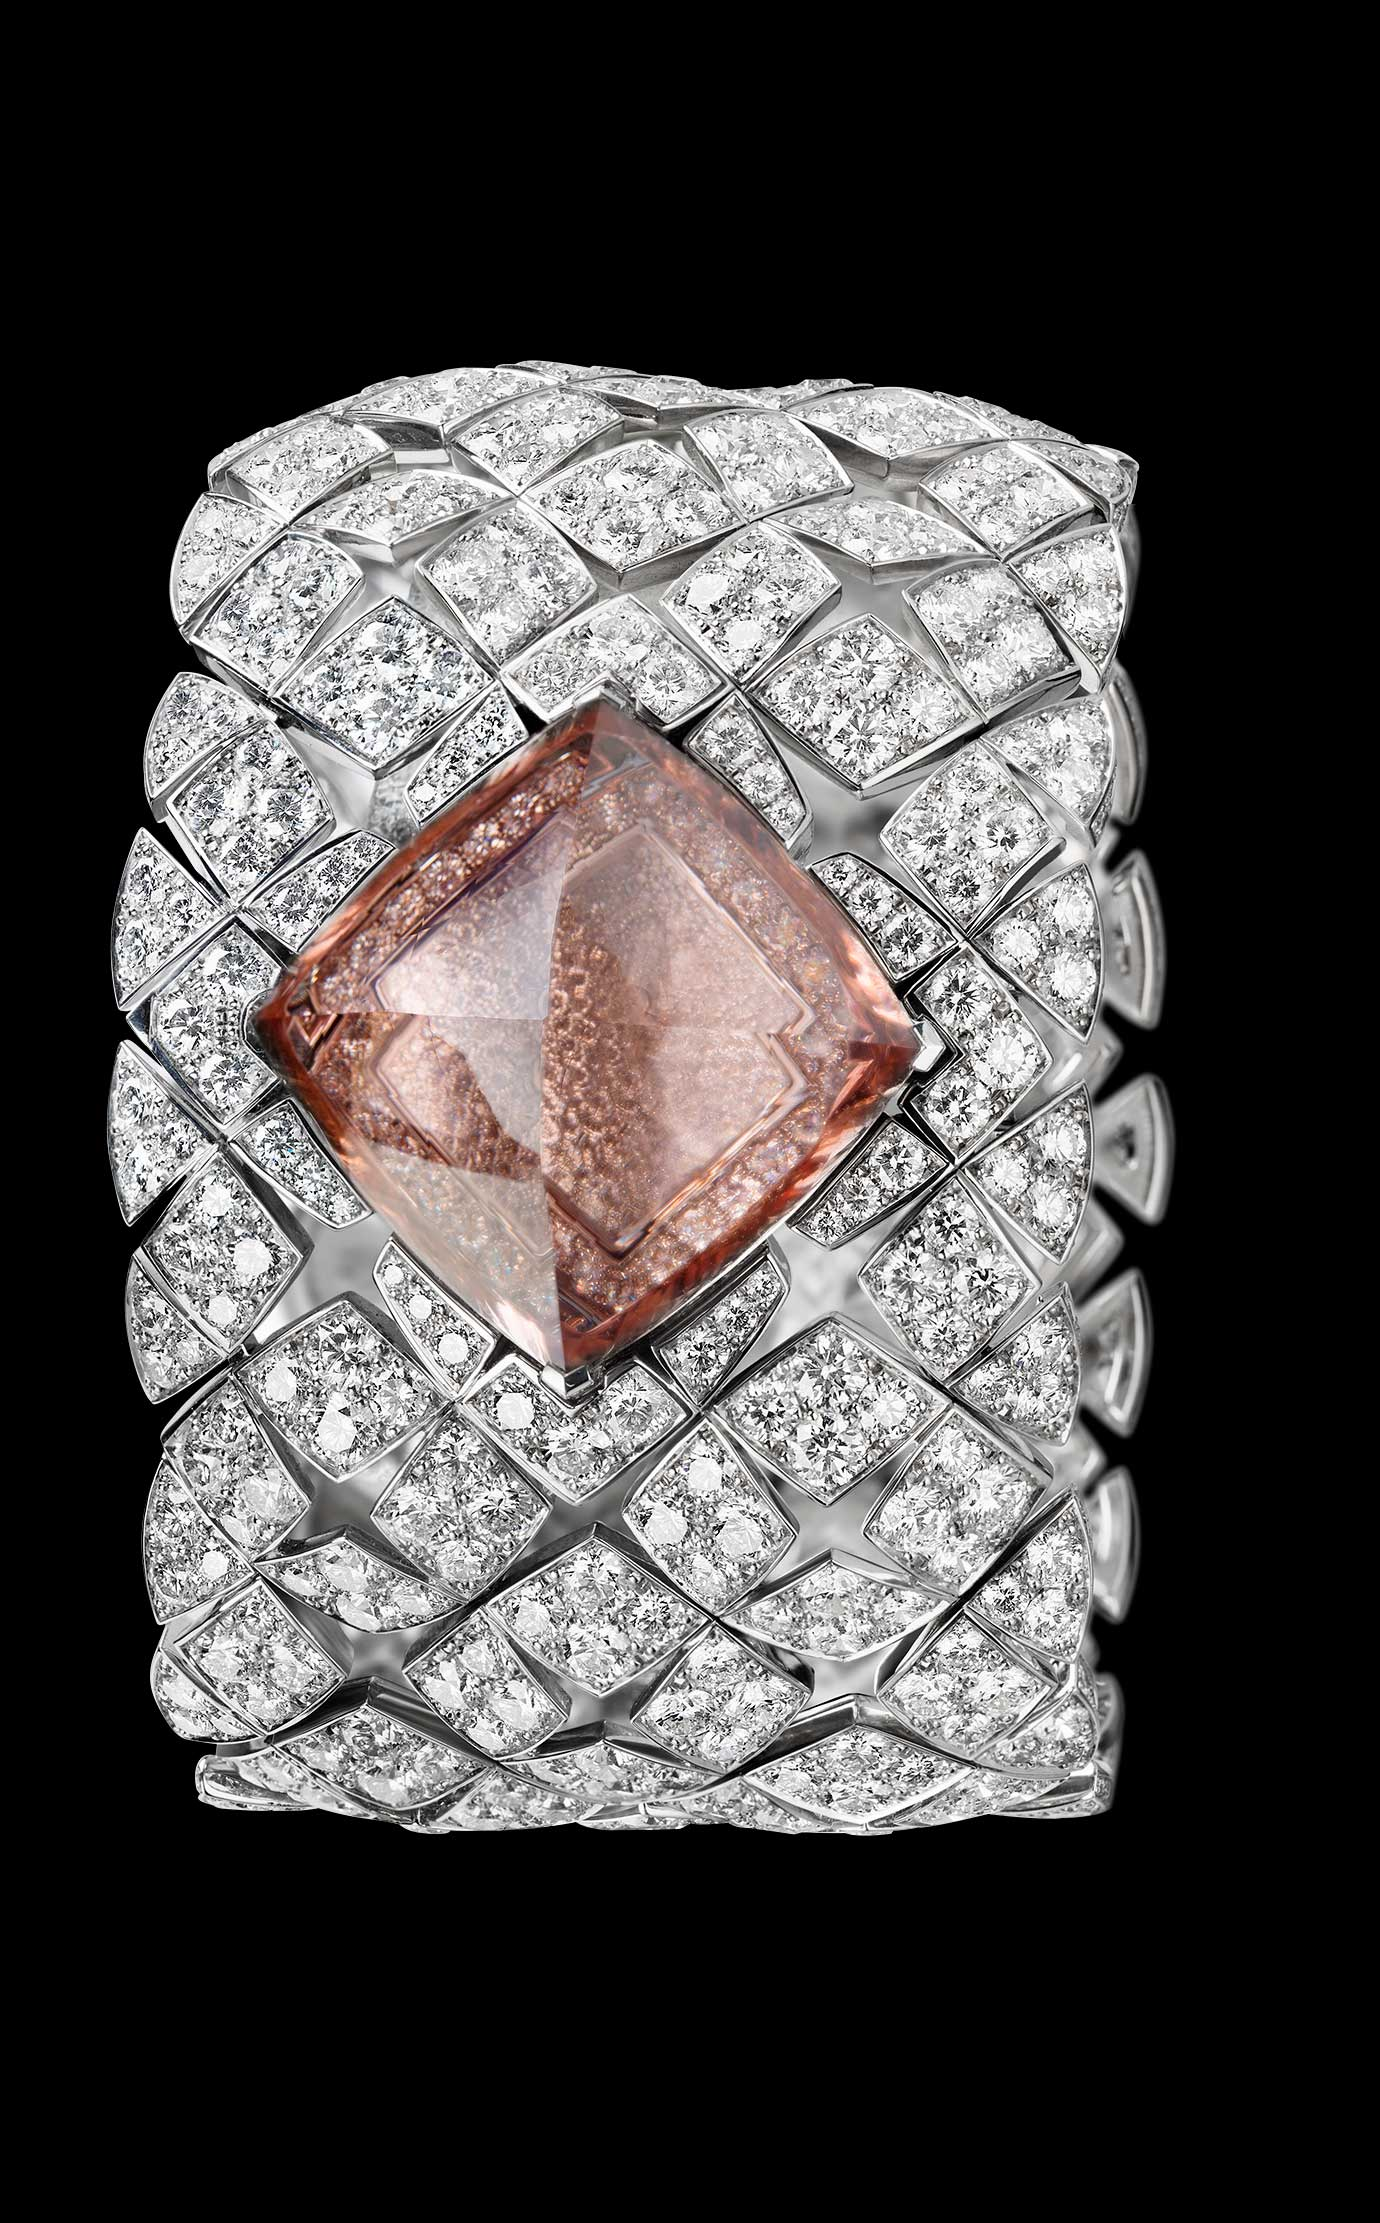 Les Eternelles de CHANEL. Secret cuff watch in 18K white gold. 43.64-carat pink morganite pyramid. - Closed